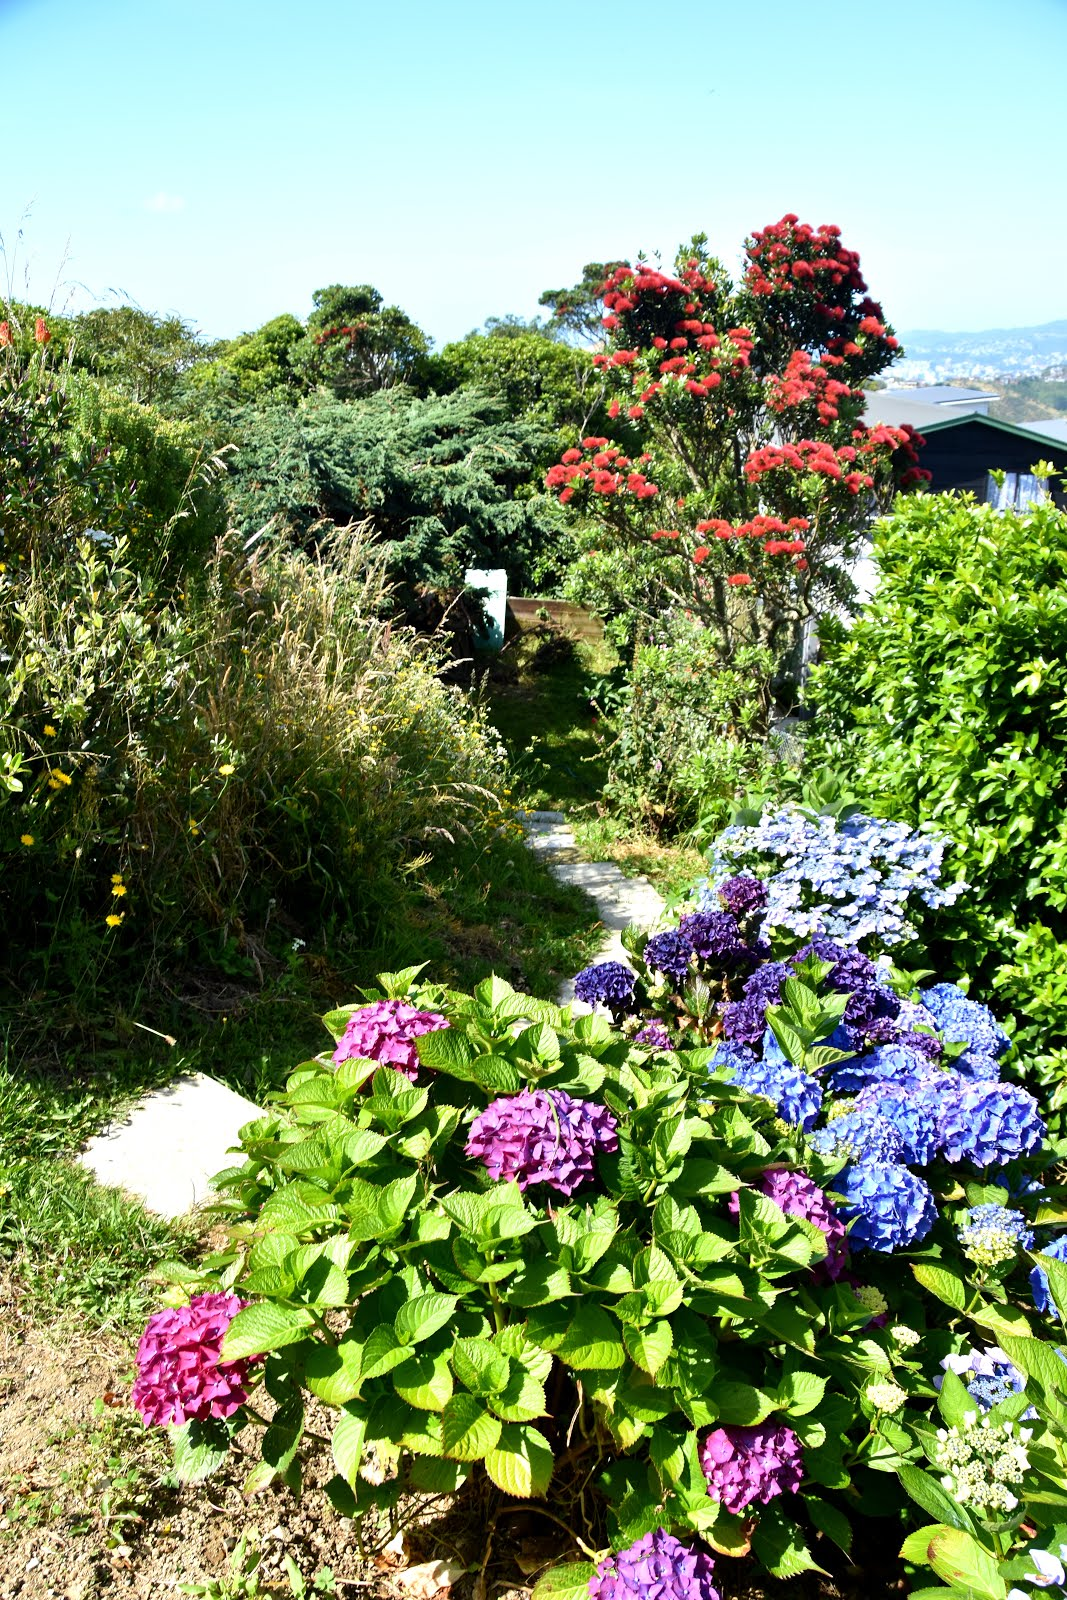 Down the garden path at back of house. Mischa's hydrangea plantings also going very well.